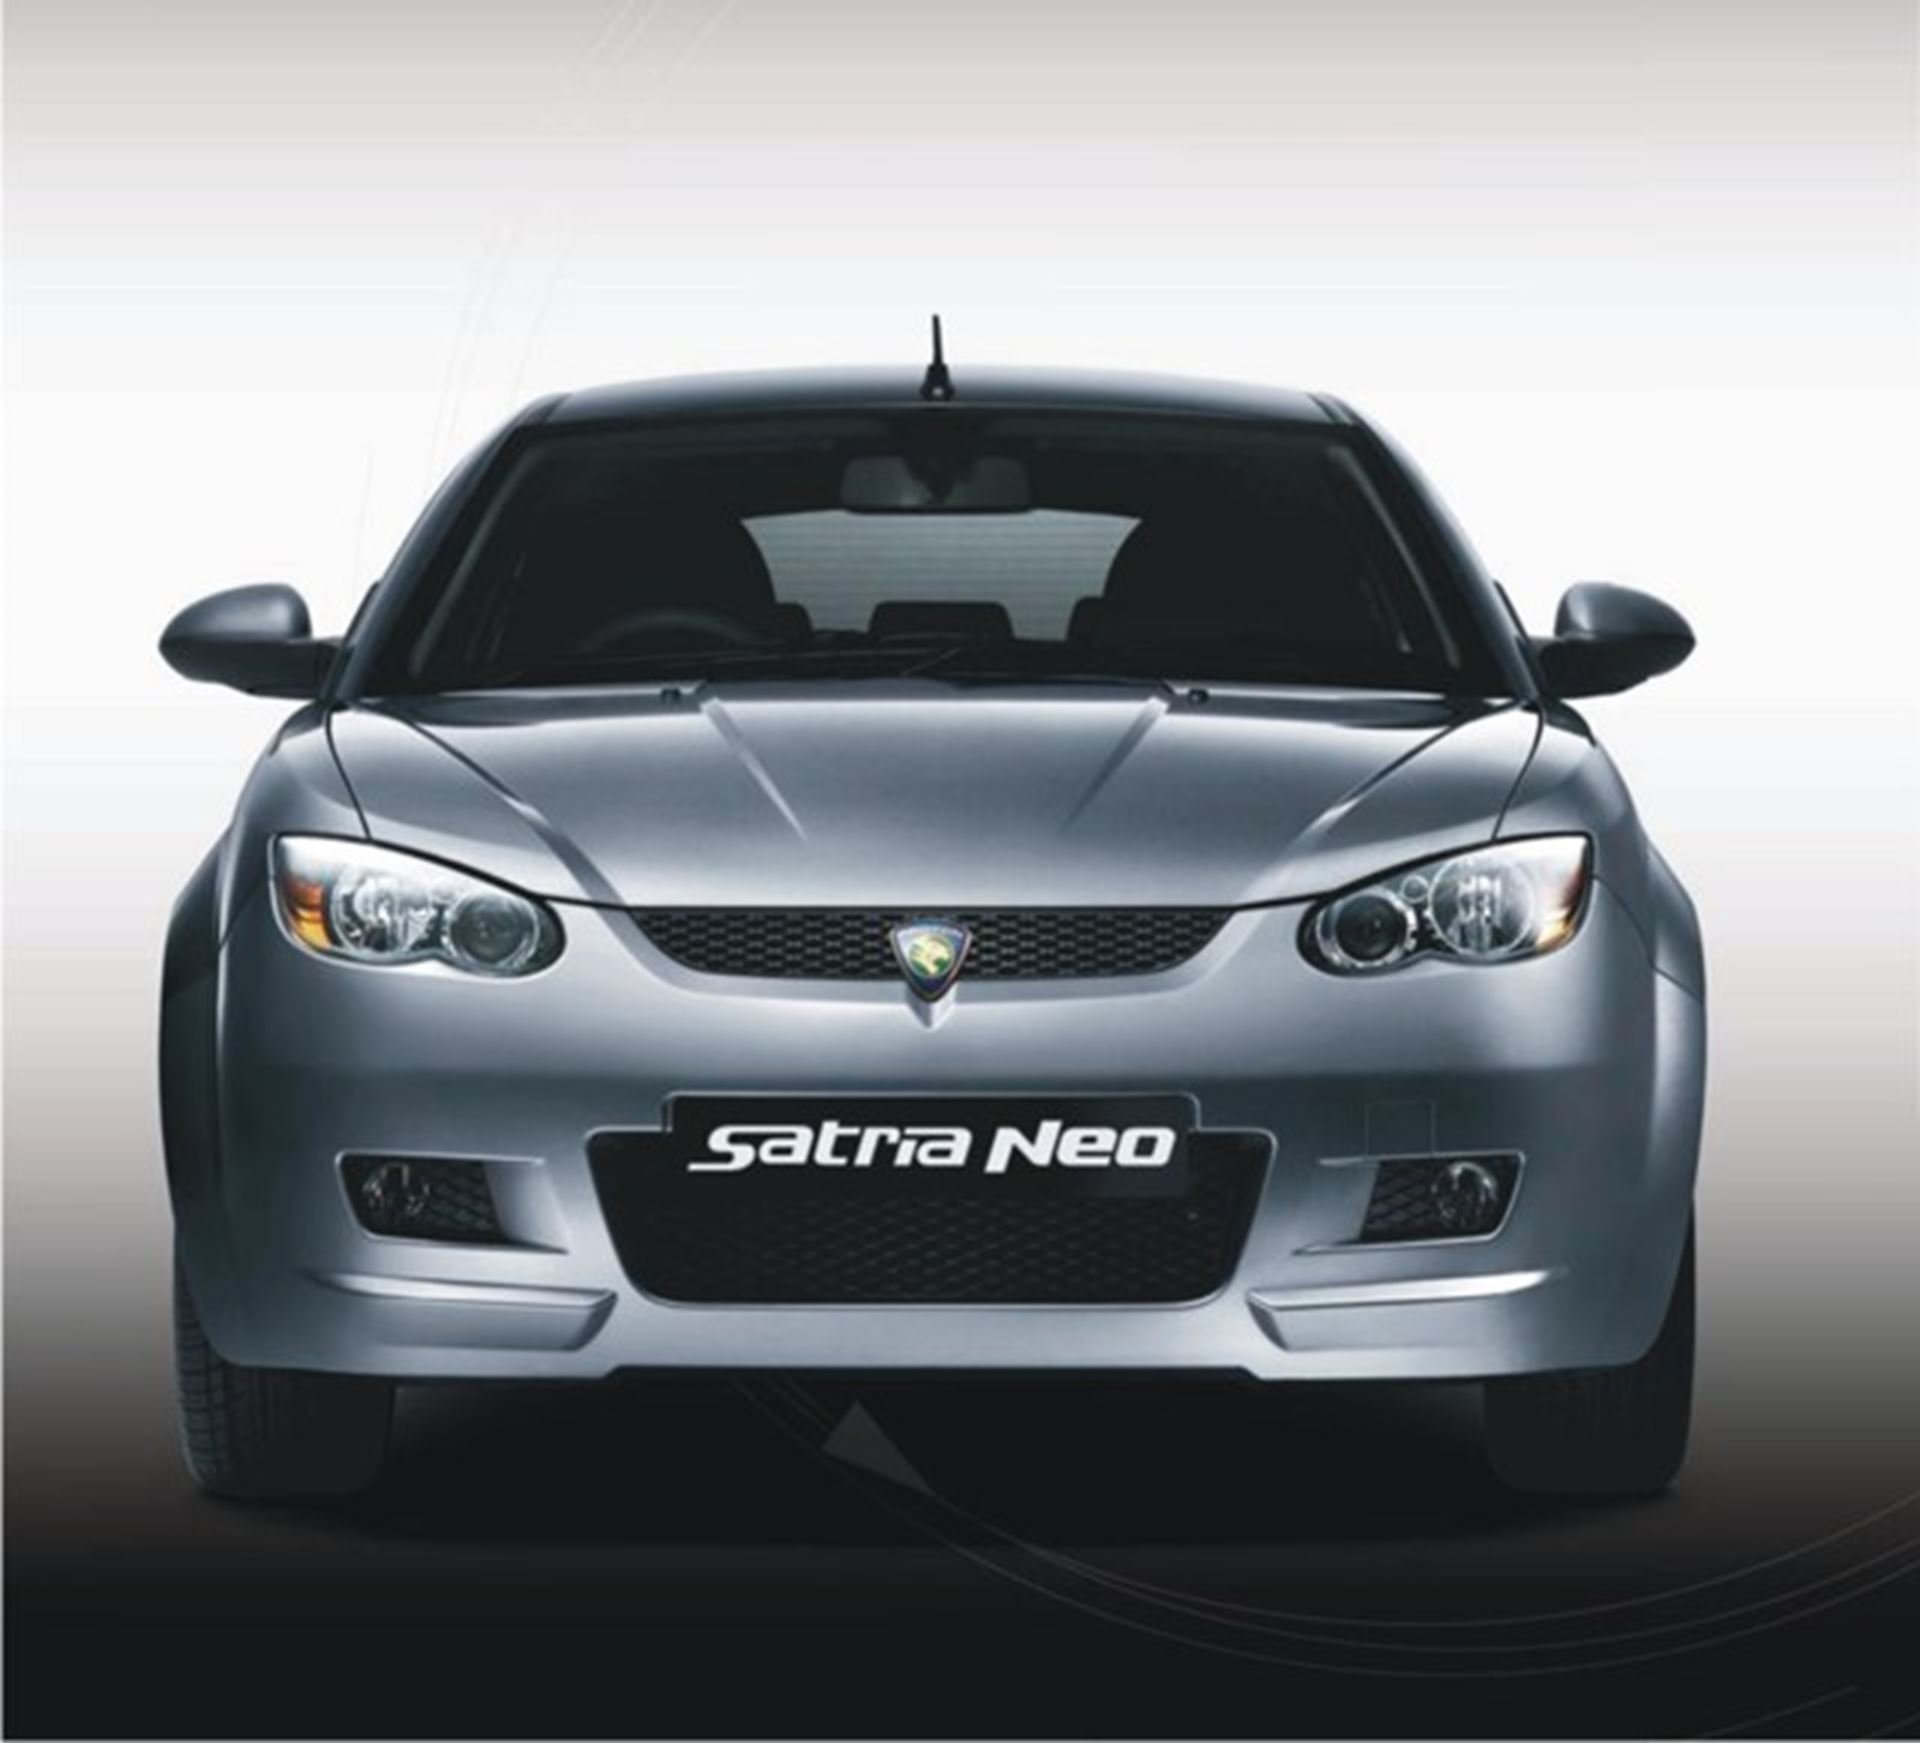 Satria Neo South Africa Car Show